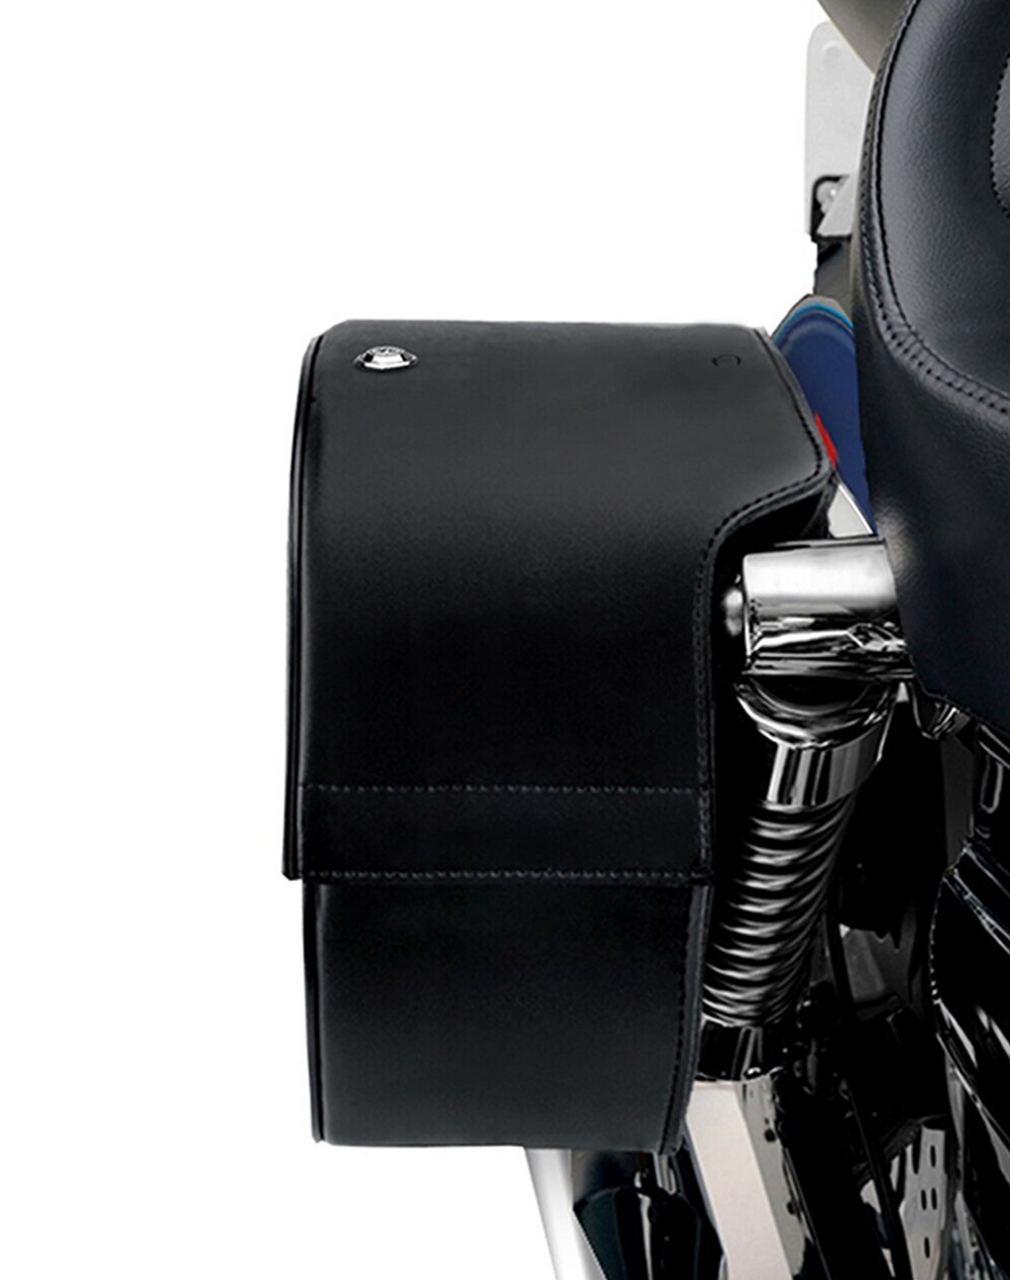 Viking Charger Side Pocket With Shock Cutout Motorcycle Saddlebags For Harley Sportster 883 Custom XL883C Shock Cutout View